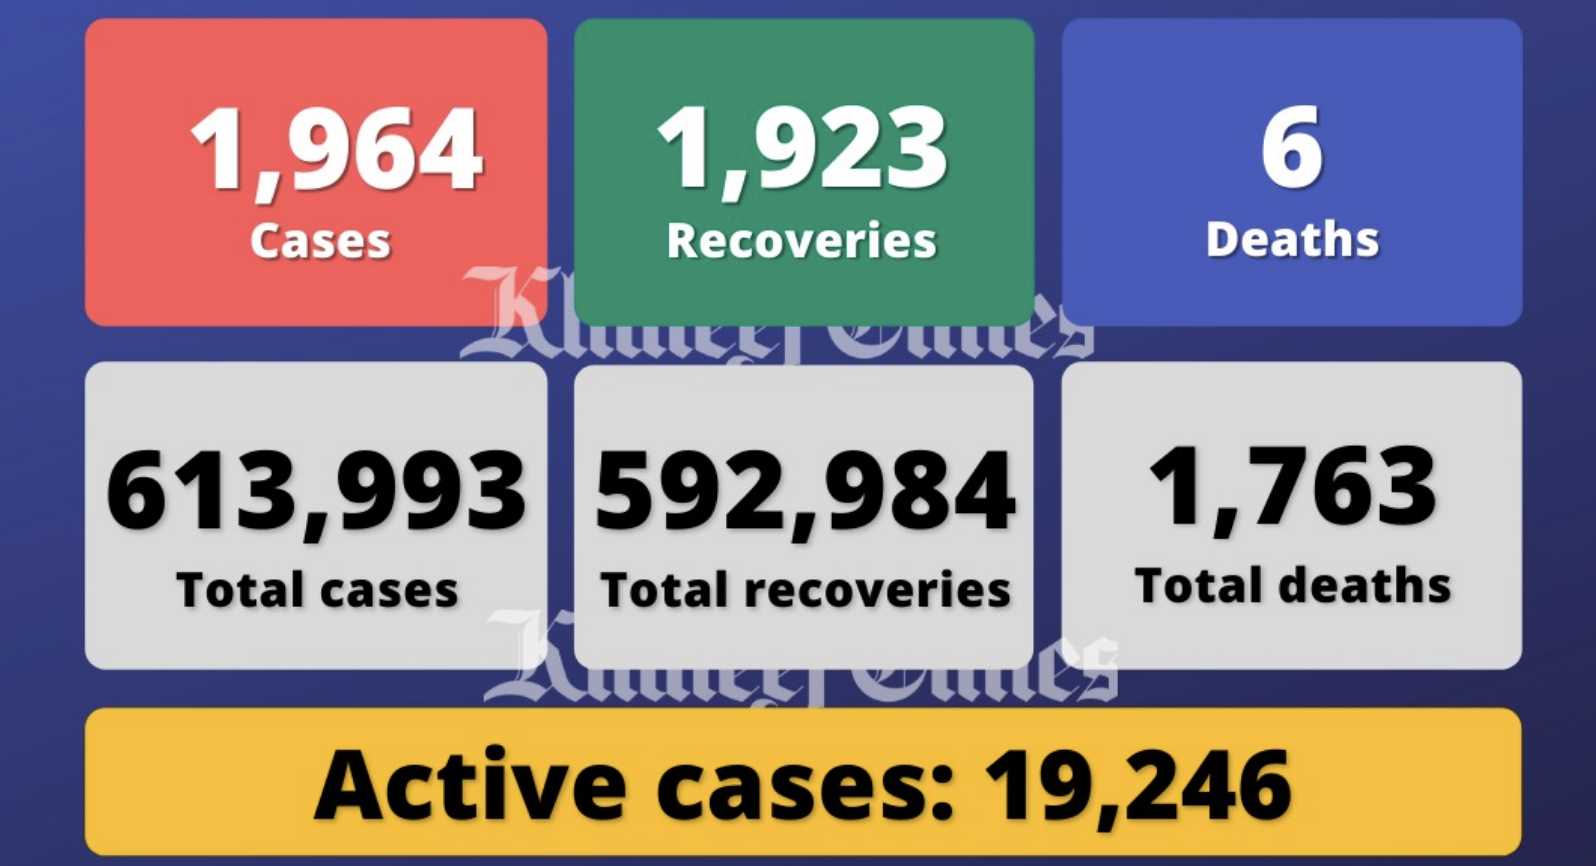 UAE reports 1,964 Covid-19 cases, 1,923 recoveries, 6 deaths